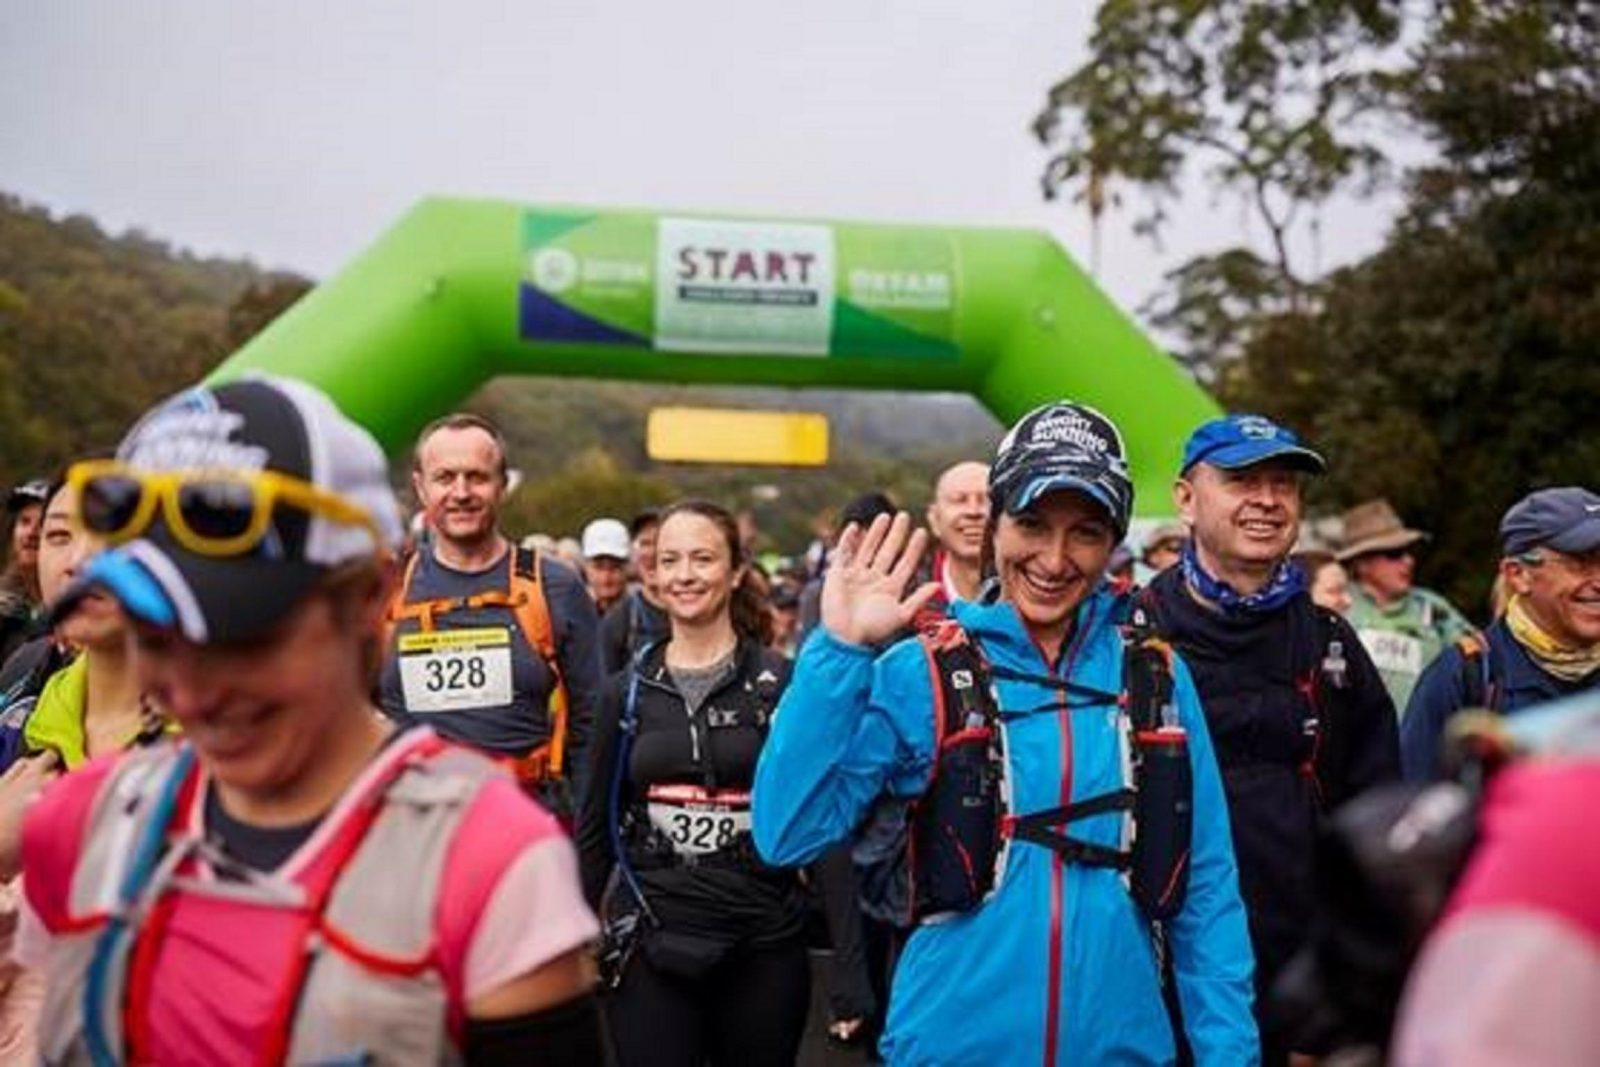 happy walkers at the startline